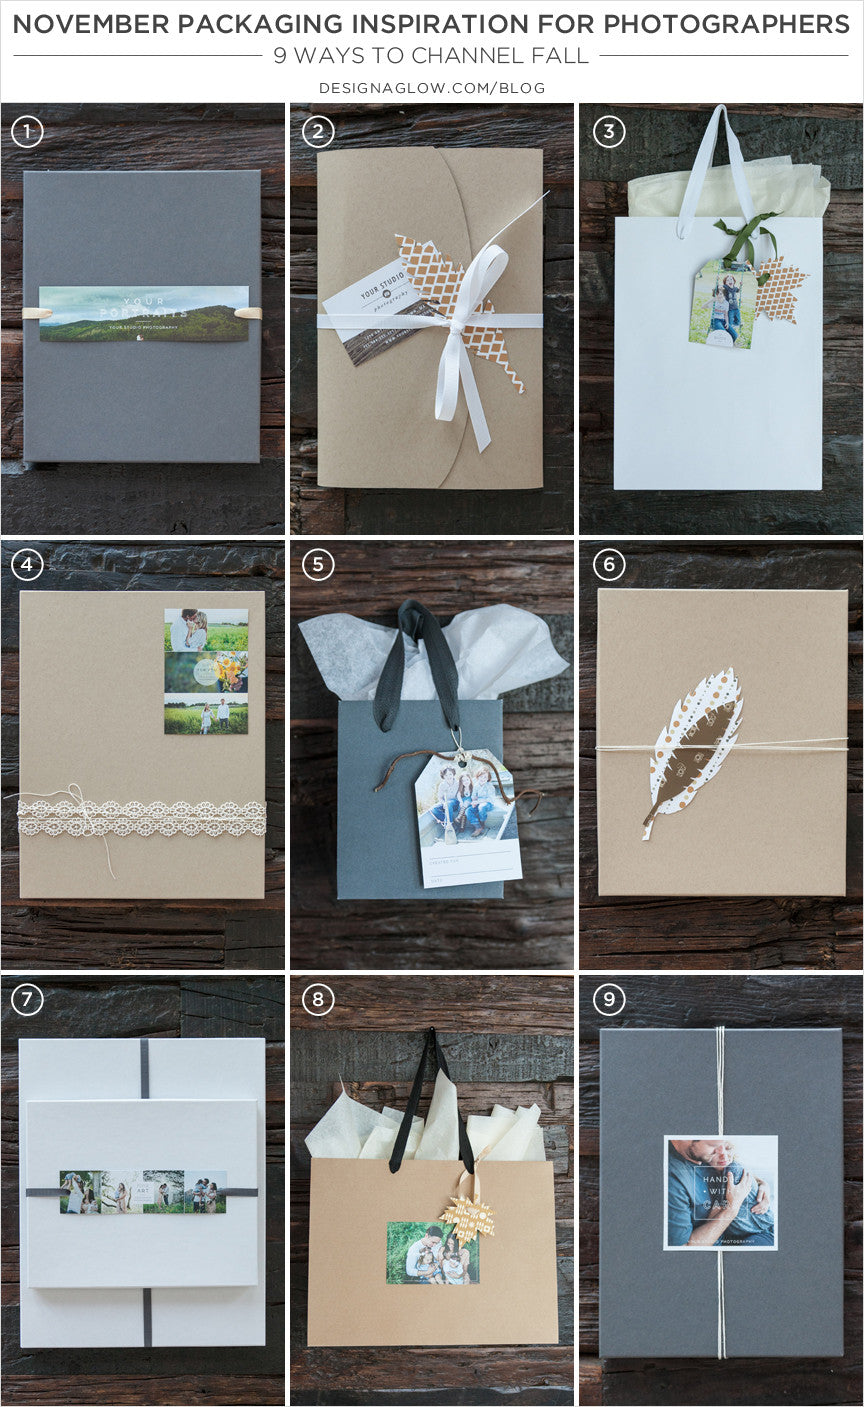 November Packaging Inspiration for Photographers: 9 Ways to Channel Fall